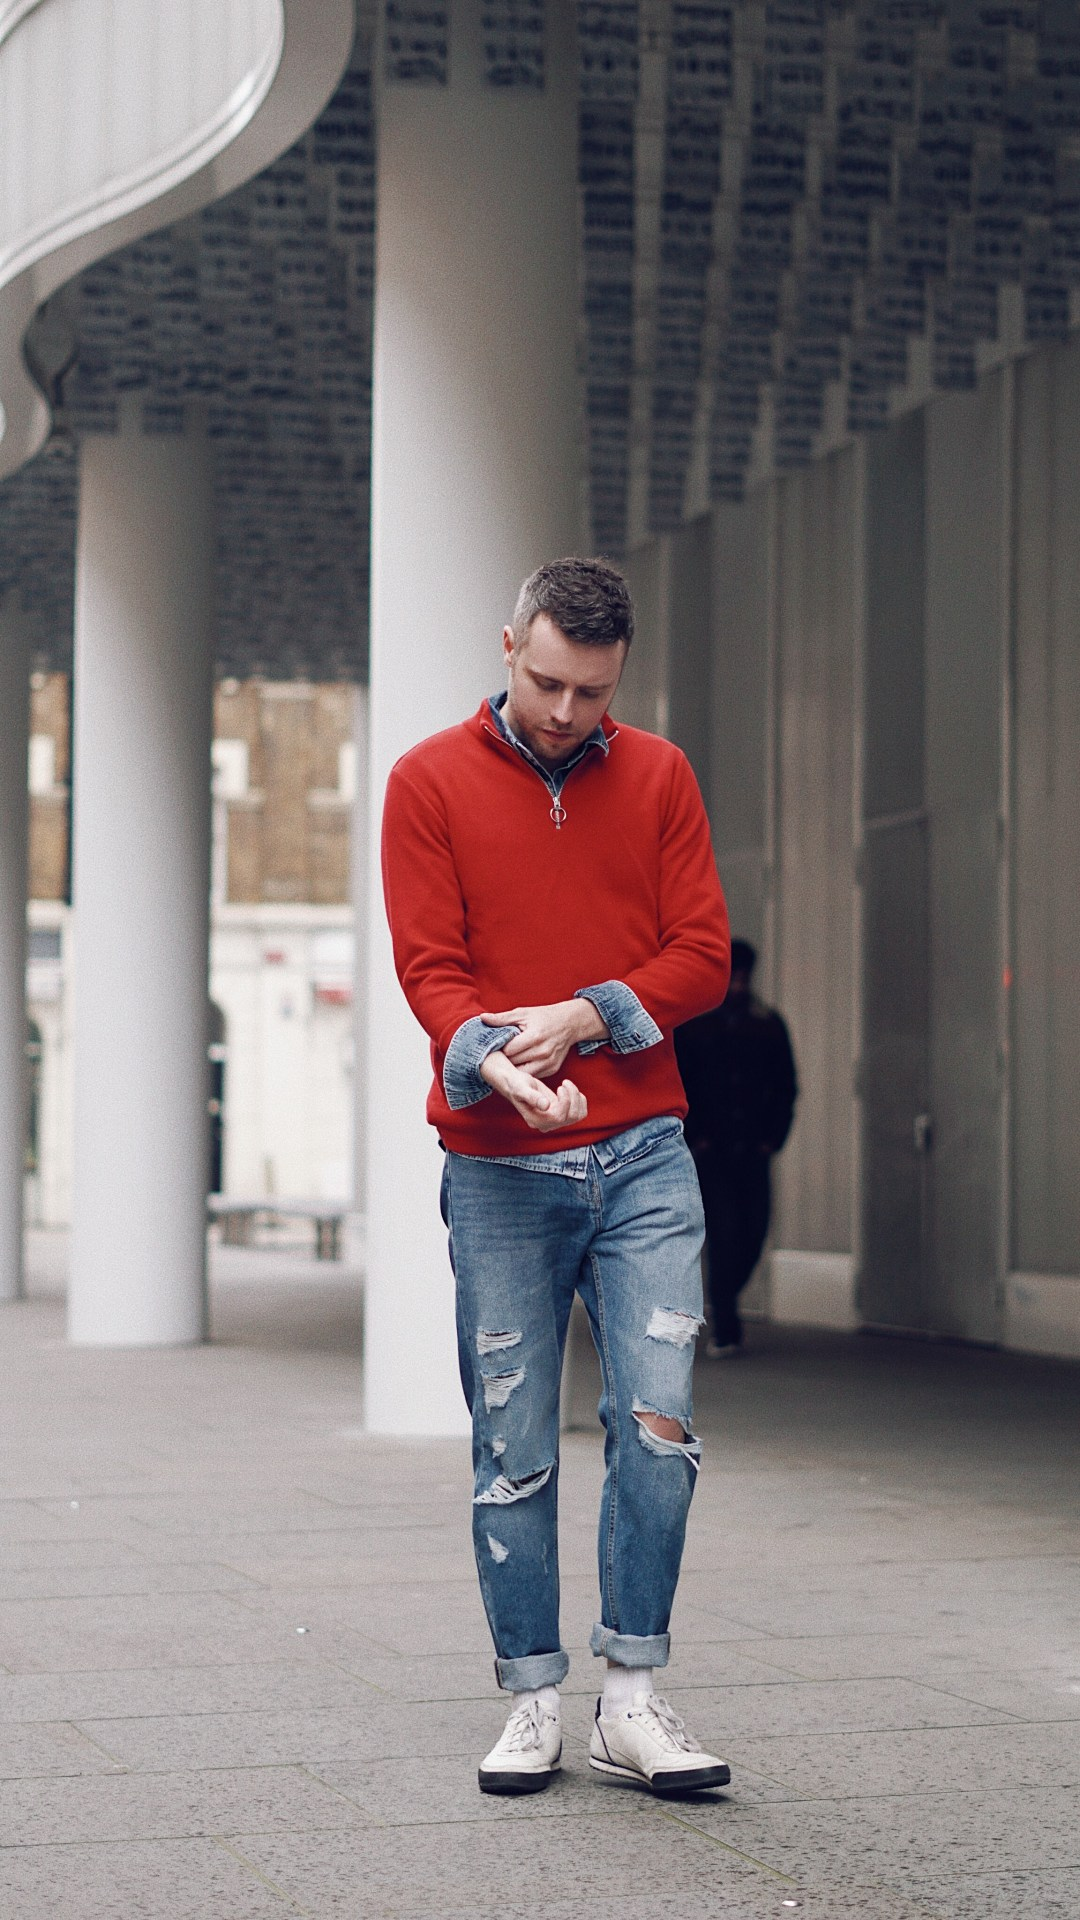 Sporting double denim with a bright colour. Wearing SHOP: High Neck Sweater from Zara, Denim Shirt from H&M, Relaxed Skinny Jeans from H&M and Trainers from Le Coq Sportfit.